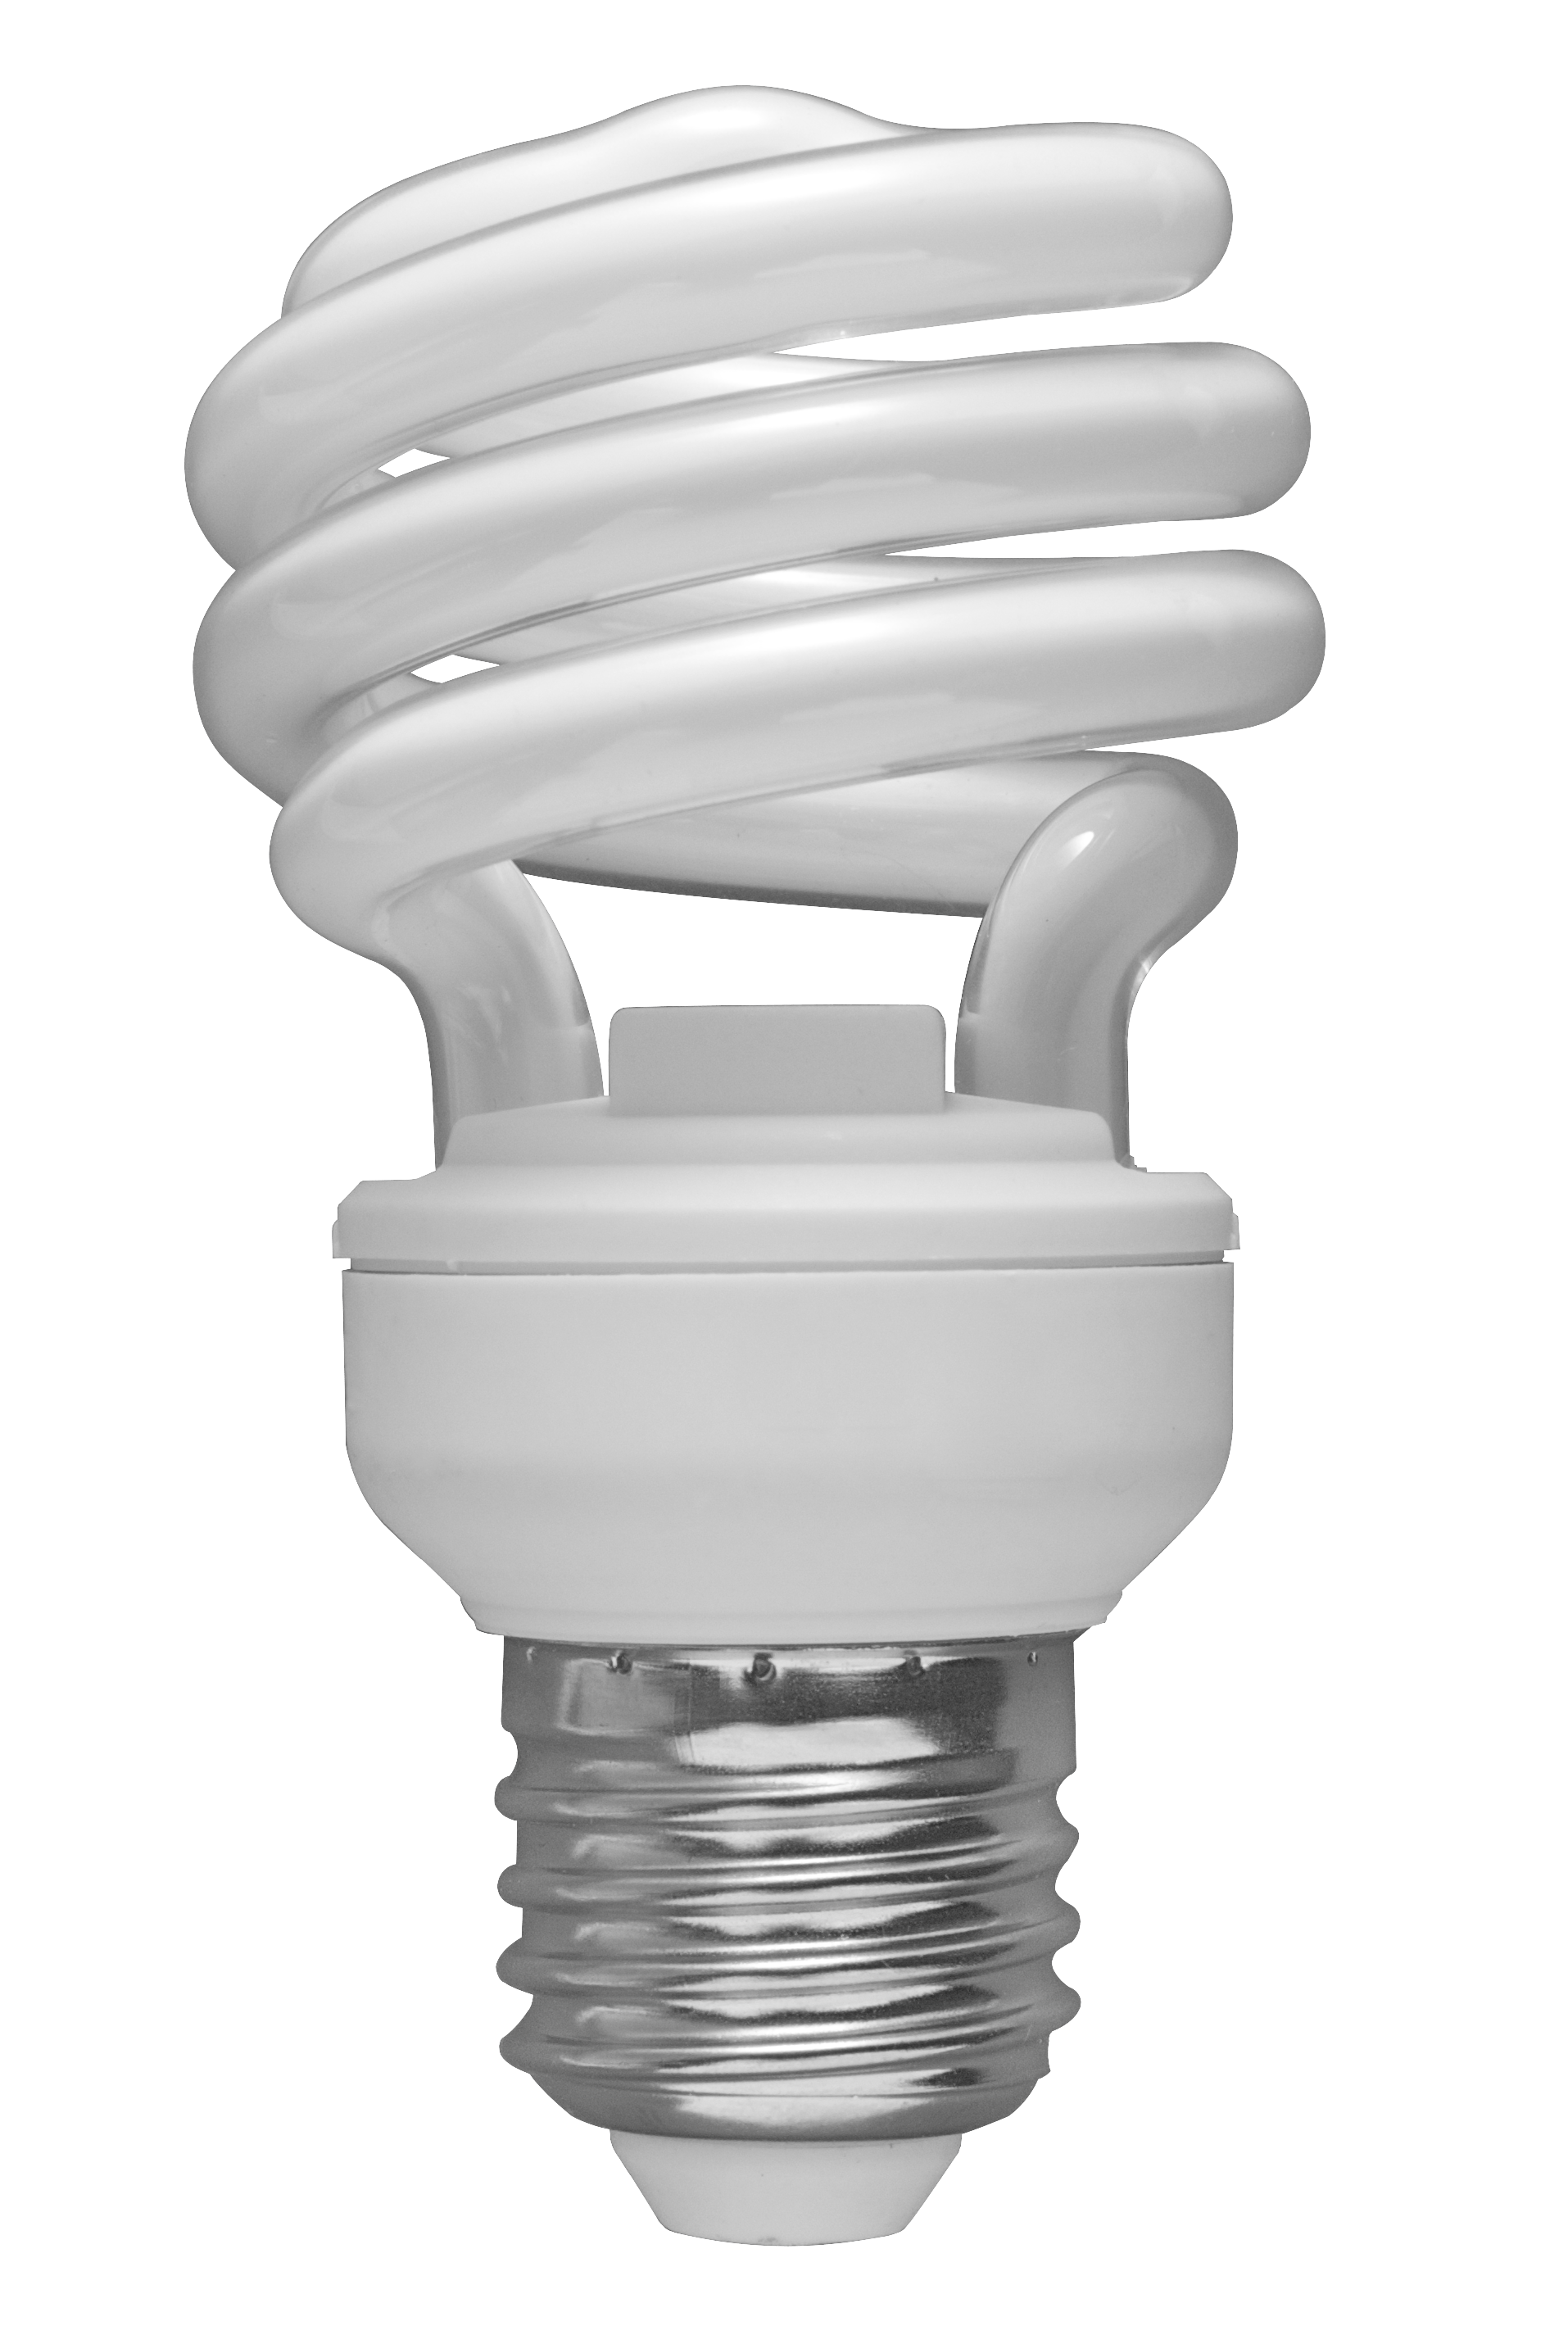 Glowing Light Bulb Png File 01 Spiral Cfl Bulb 2010 03 08 Transparent Back Png